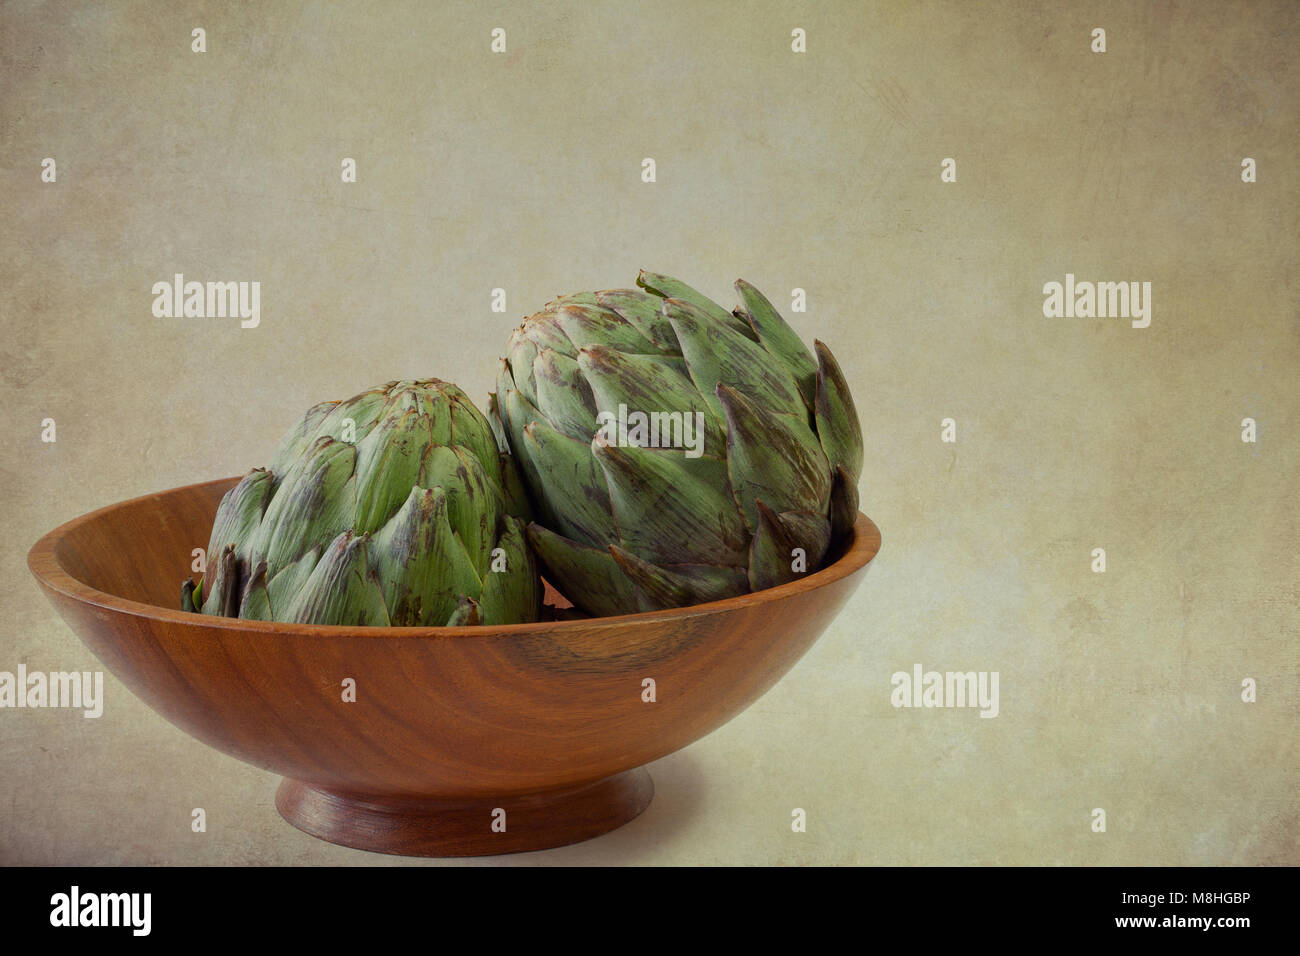 Two artichokes in wooden bowl with grunge background and copy space Stock Photo